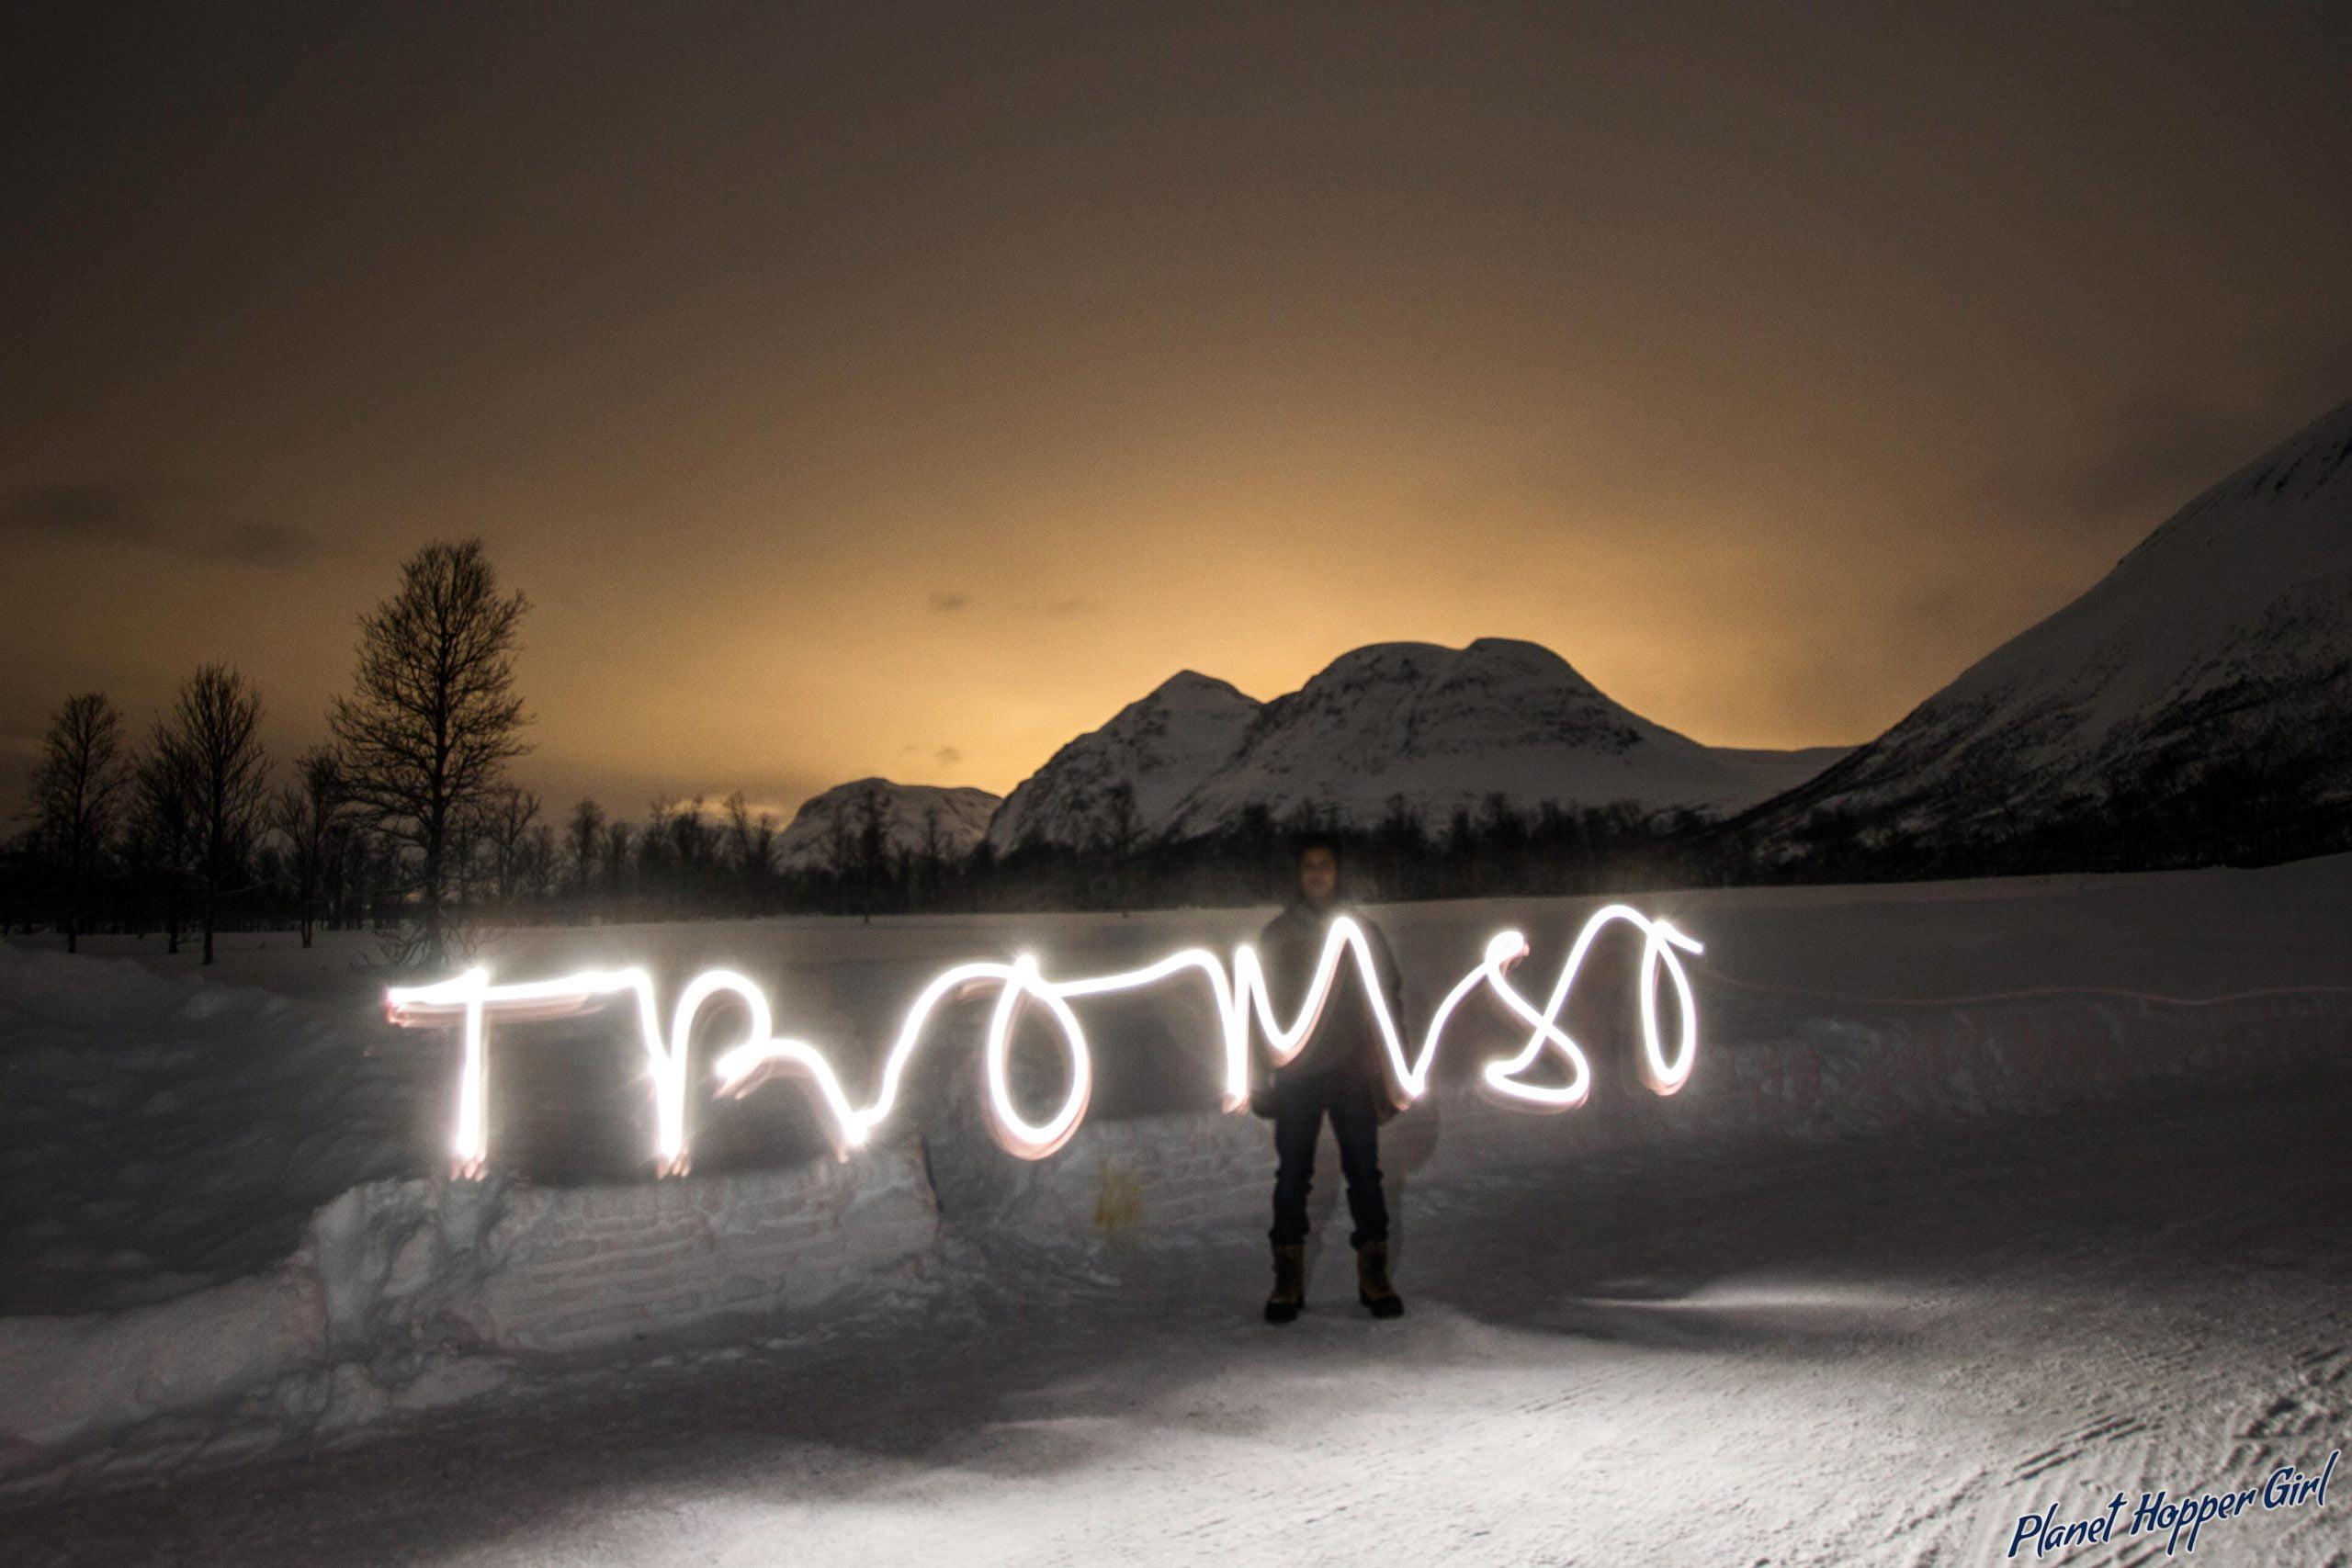 We are leaving parts of our heart and foot prints in Norway moment, Tromso, Norway